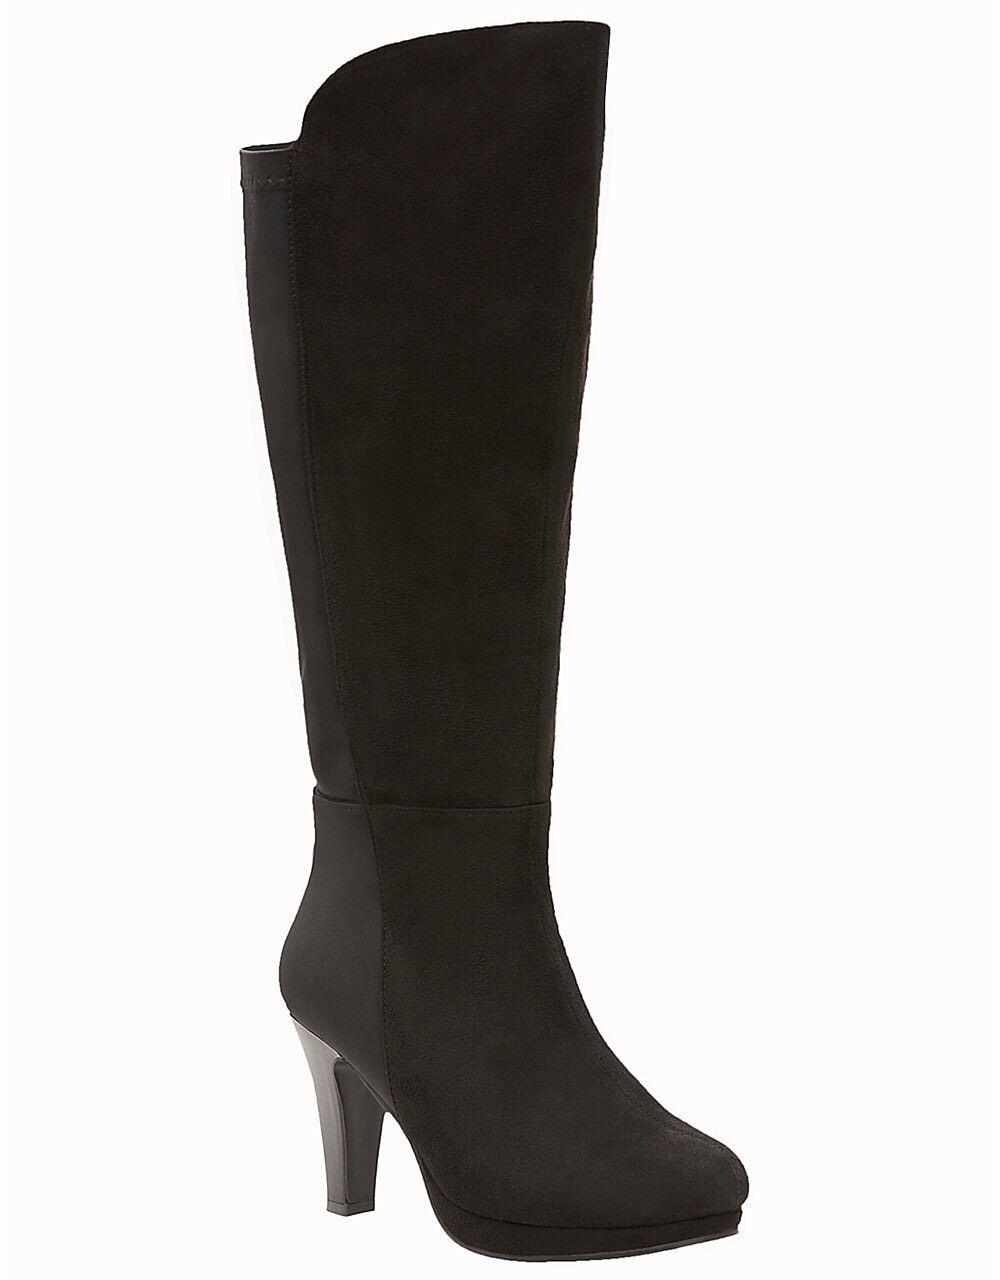 Defected Tall Heeled Stretch Back Women's Boots Black Size 11W By Lane Bryant